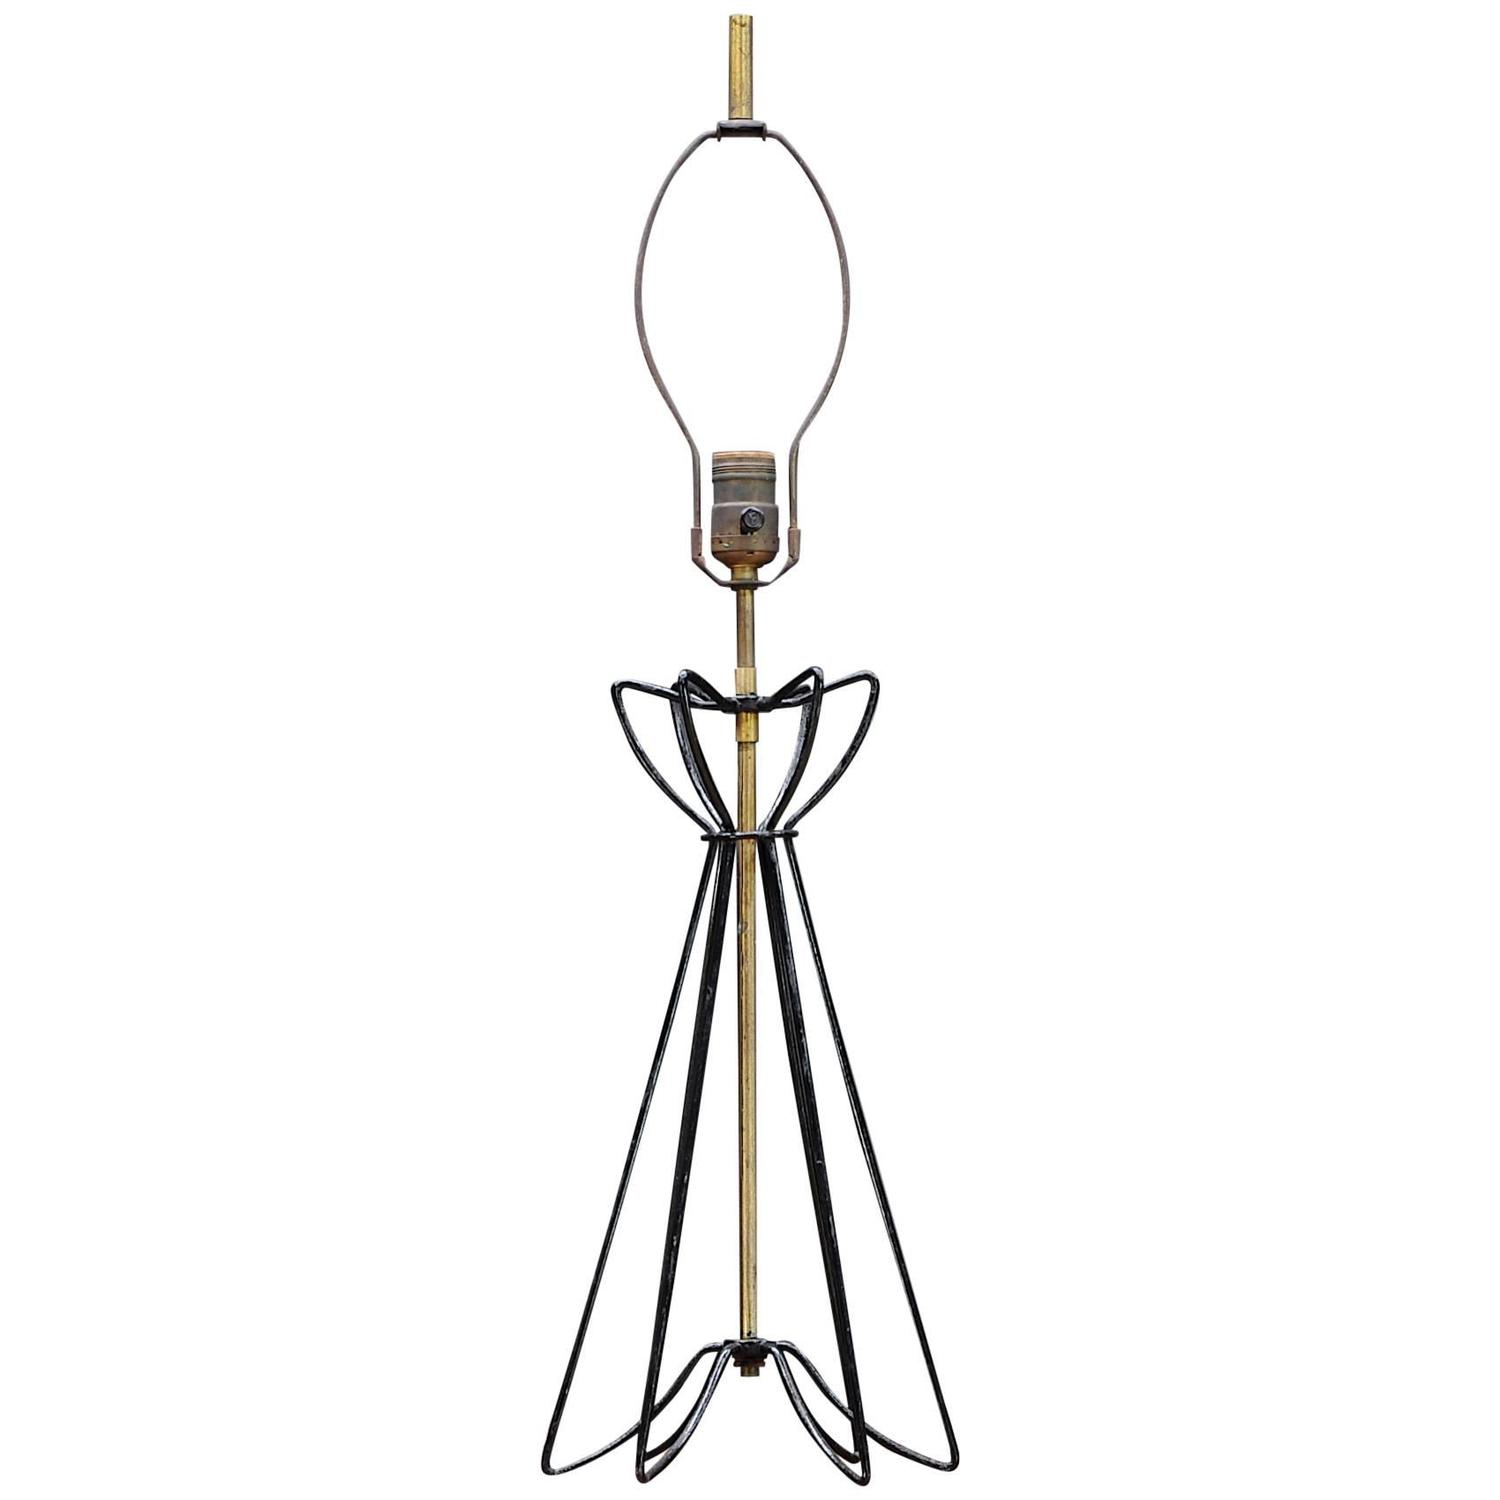 Ferris and Shacknove Modernist Bent Wire Table Lamp at 1stdibs